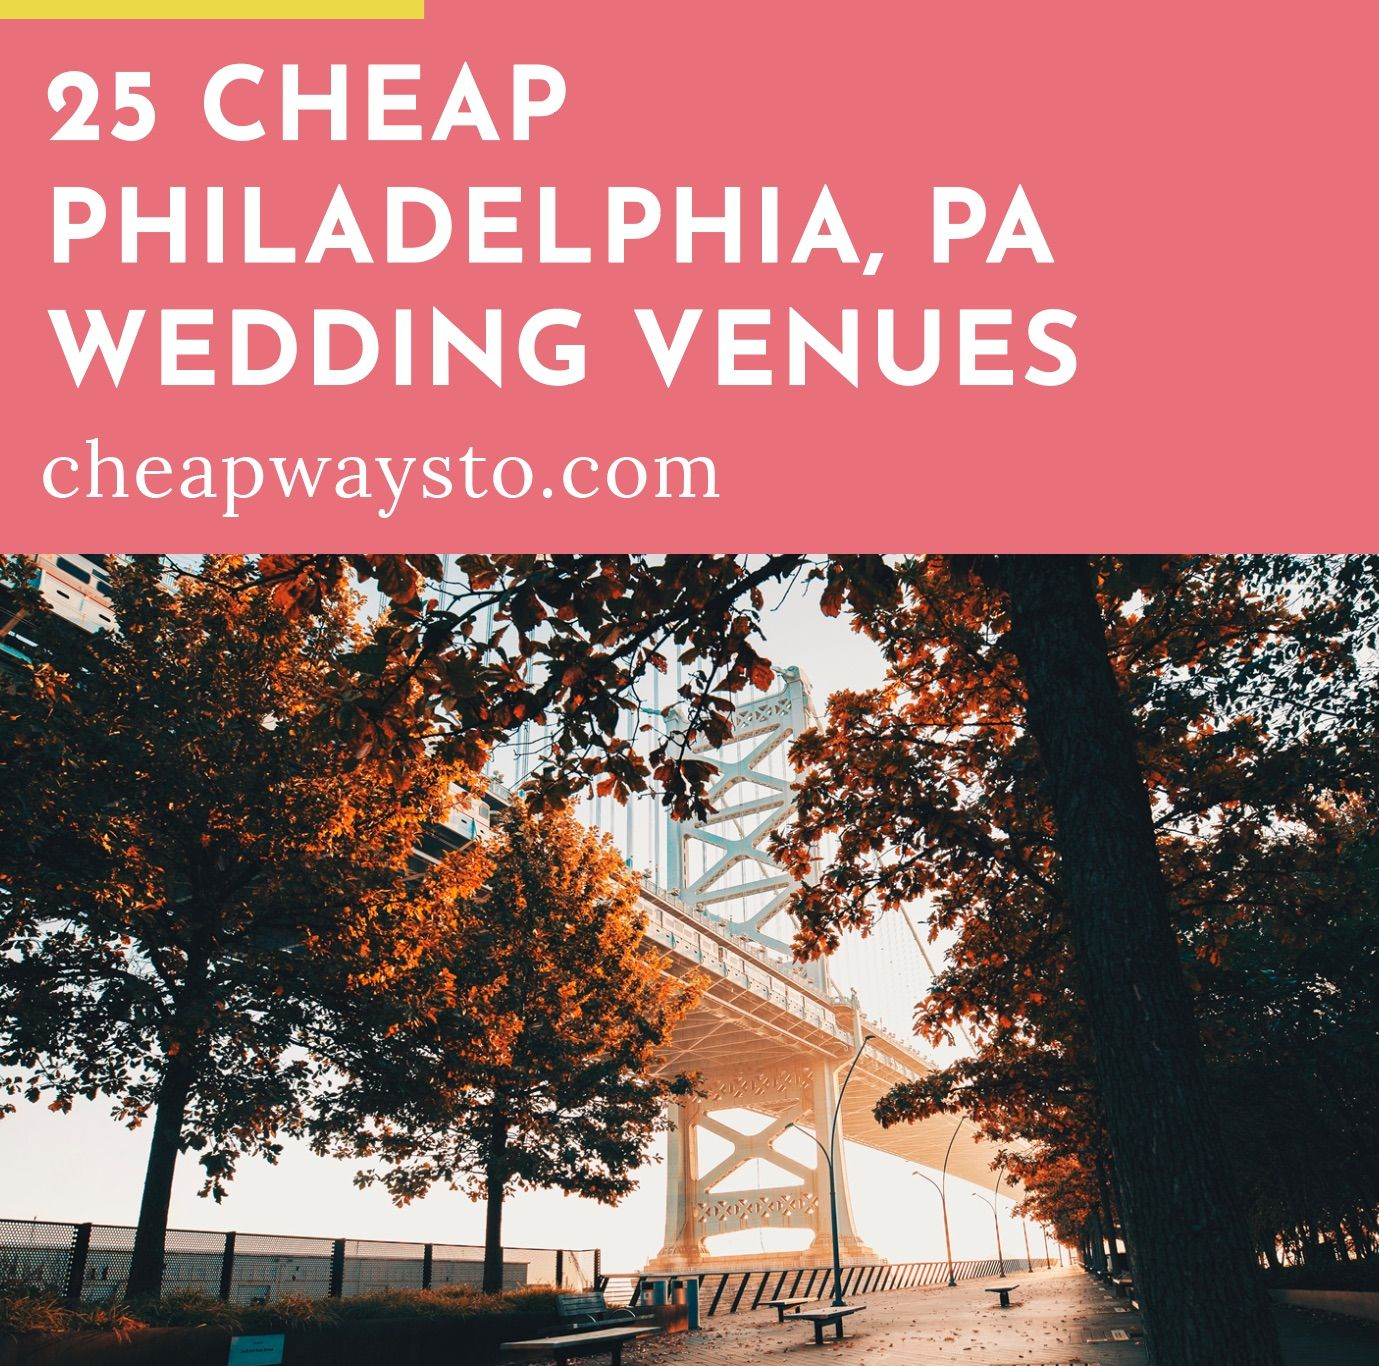 25 Cheap Philadelphia Wedding Venues (With images ...